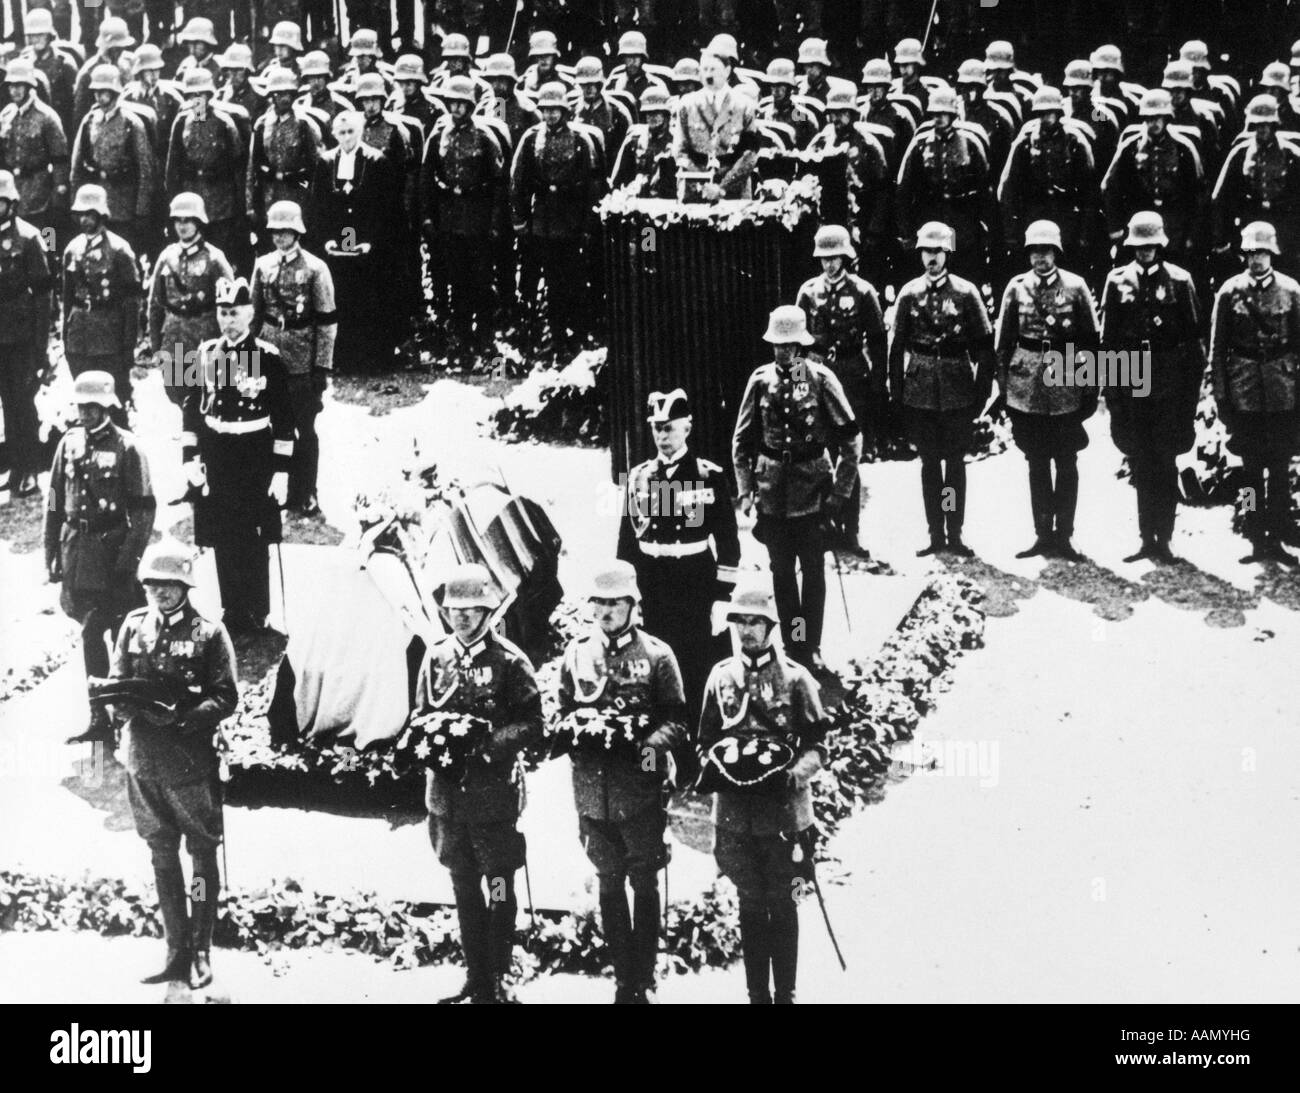 1930s GERMAN TROOPS IN FORMATION STATE FUNERAL OF GENERAL PAUL VON HINDENBURG AUGUST 1934 - Stock Image